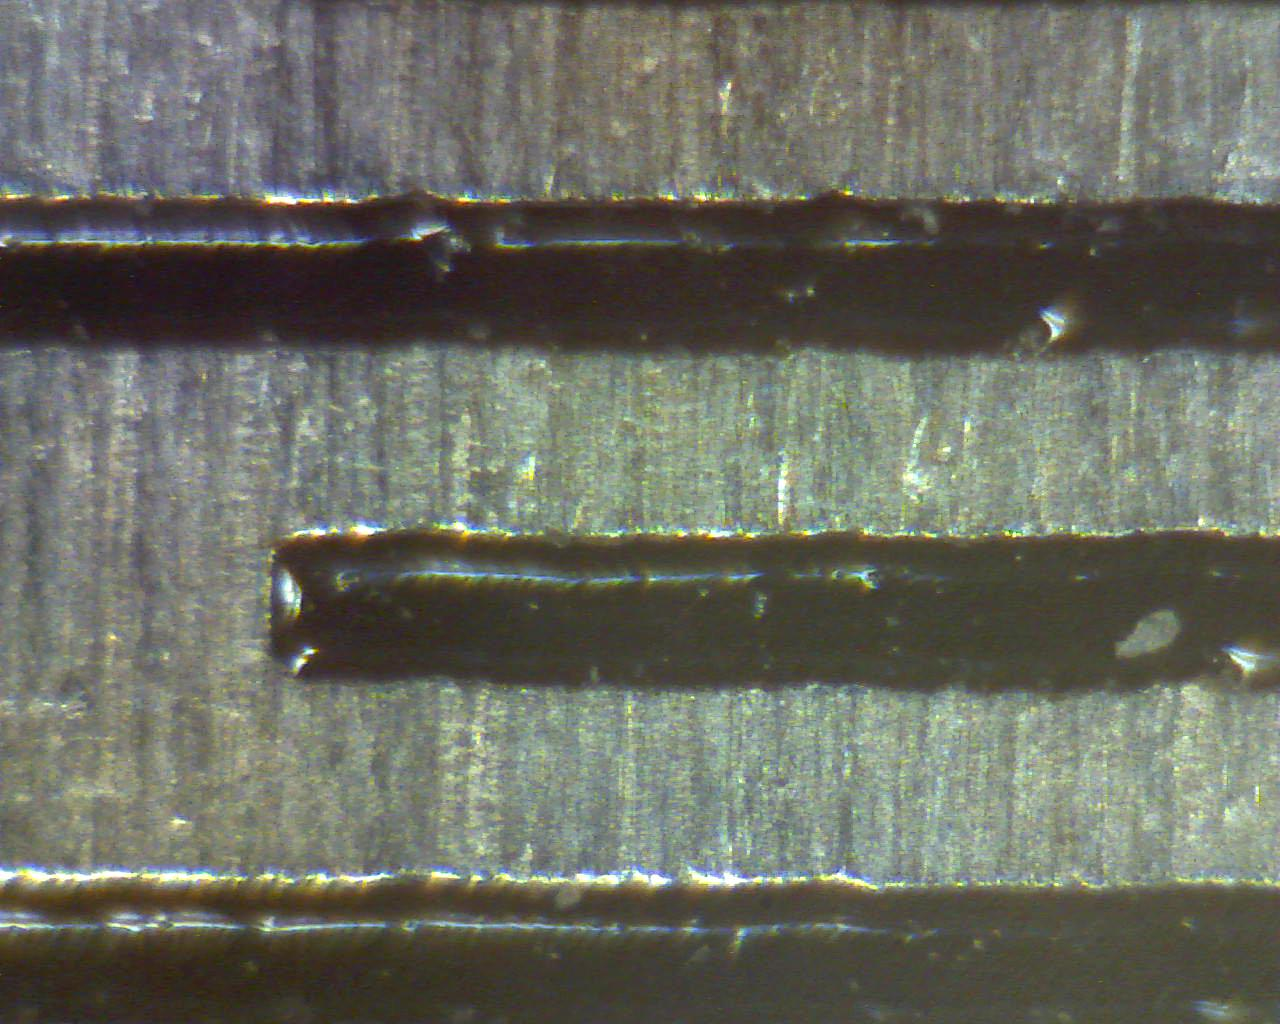 Usb digital microscope's full zoom level of a ruler (markings at 0.5mm)